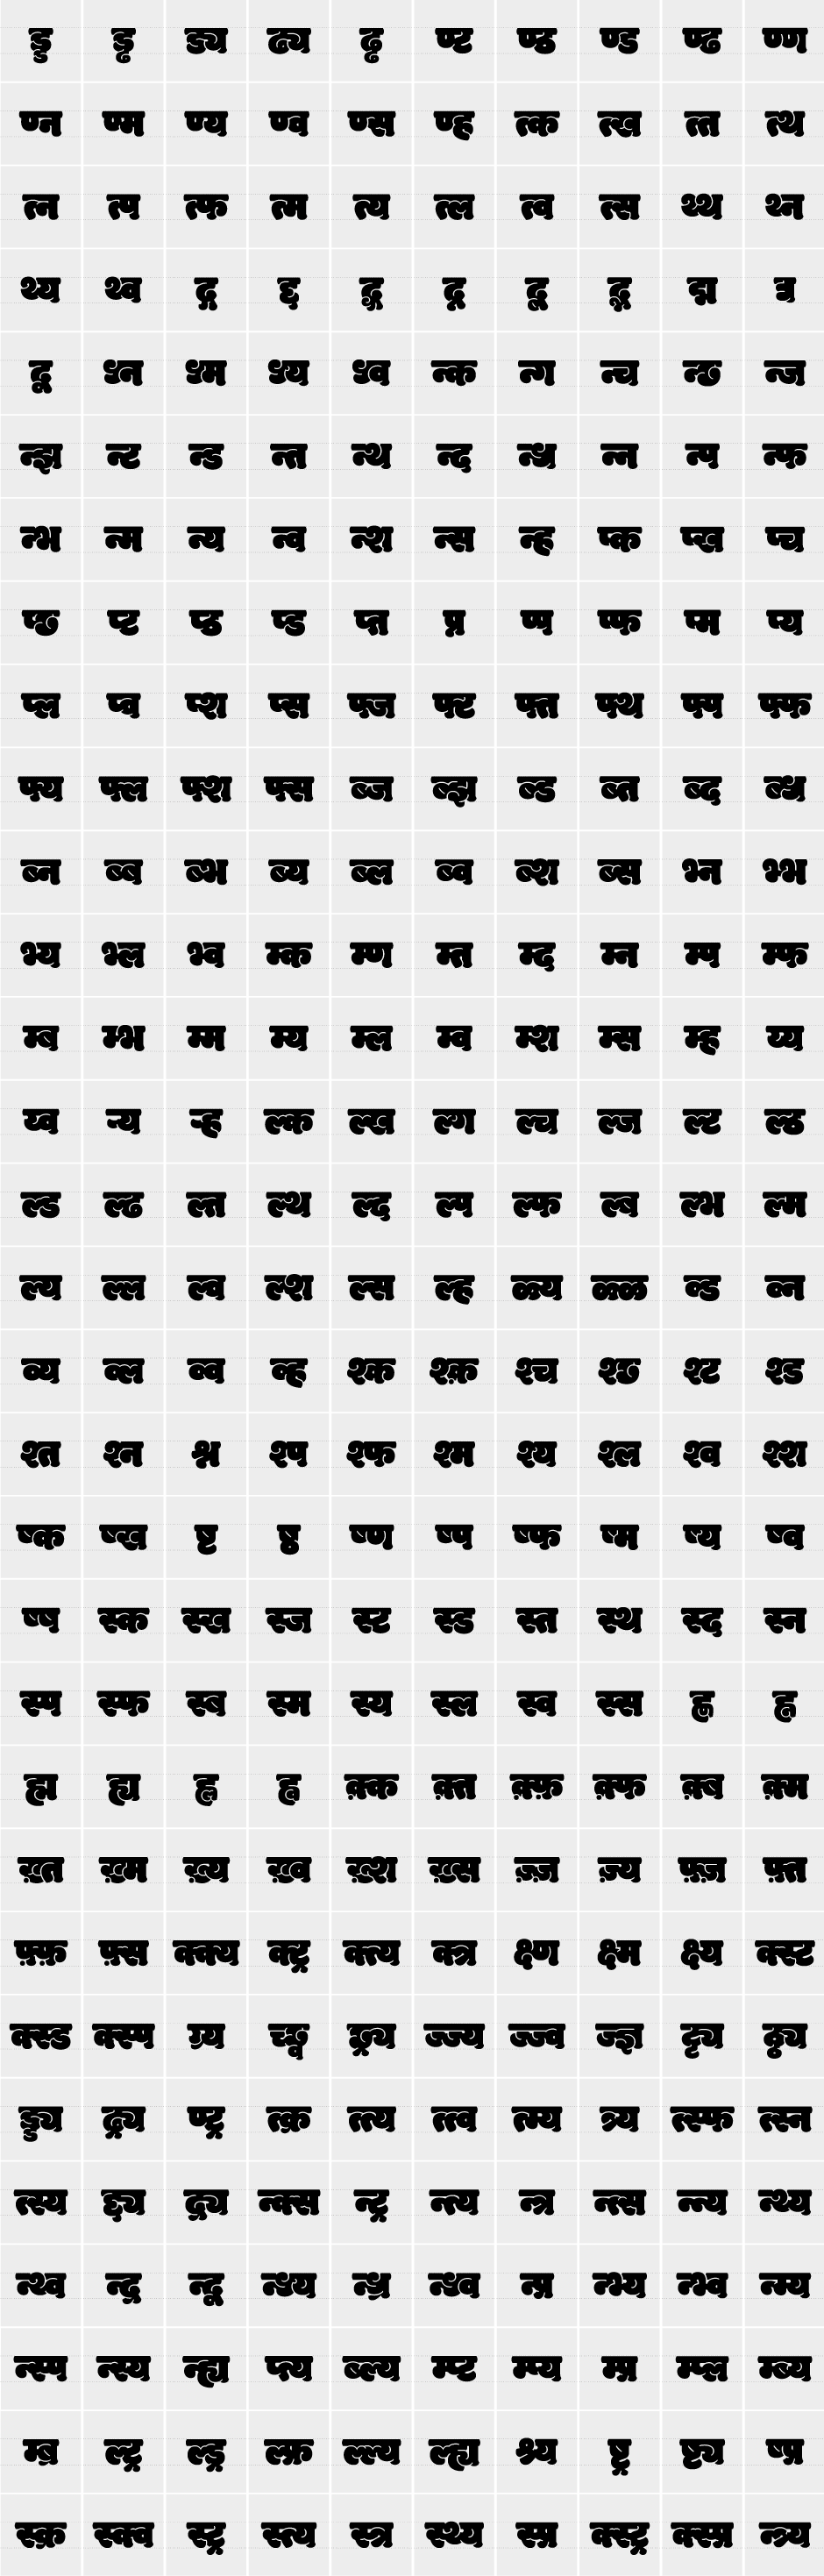 marathi calligraphy fonts free download for pc